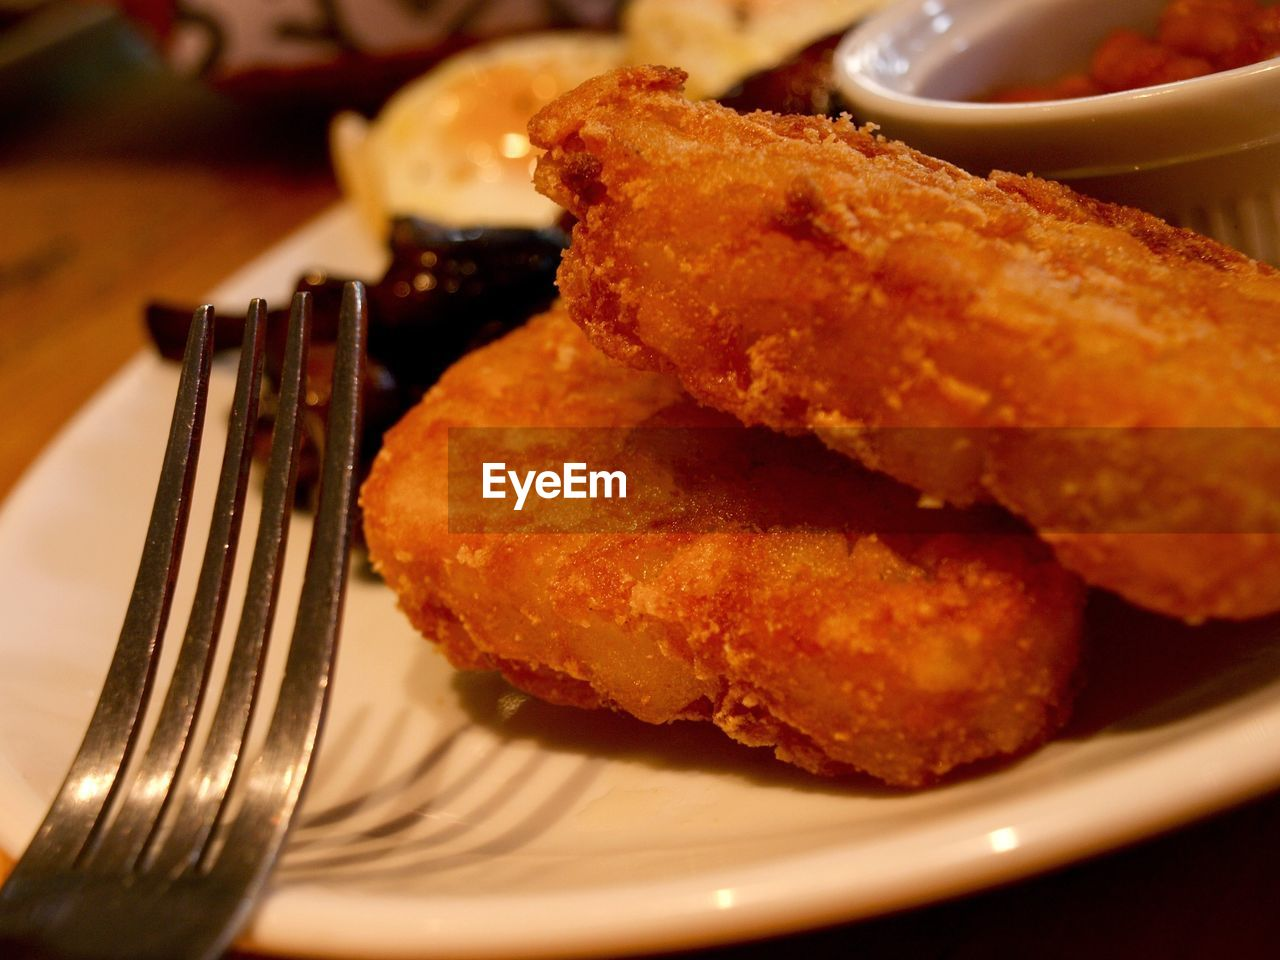 food, food and drink, plate, freshness, ready-to-eat, still life, fork, serving size, close-up, table, unhealthy eating, indoors, indulgence, fried, dip, appetizer, deep fried, snack, focus on foreground, no people, meat, condiment, side dish, sweet food, fried chicken, fast food